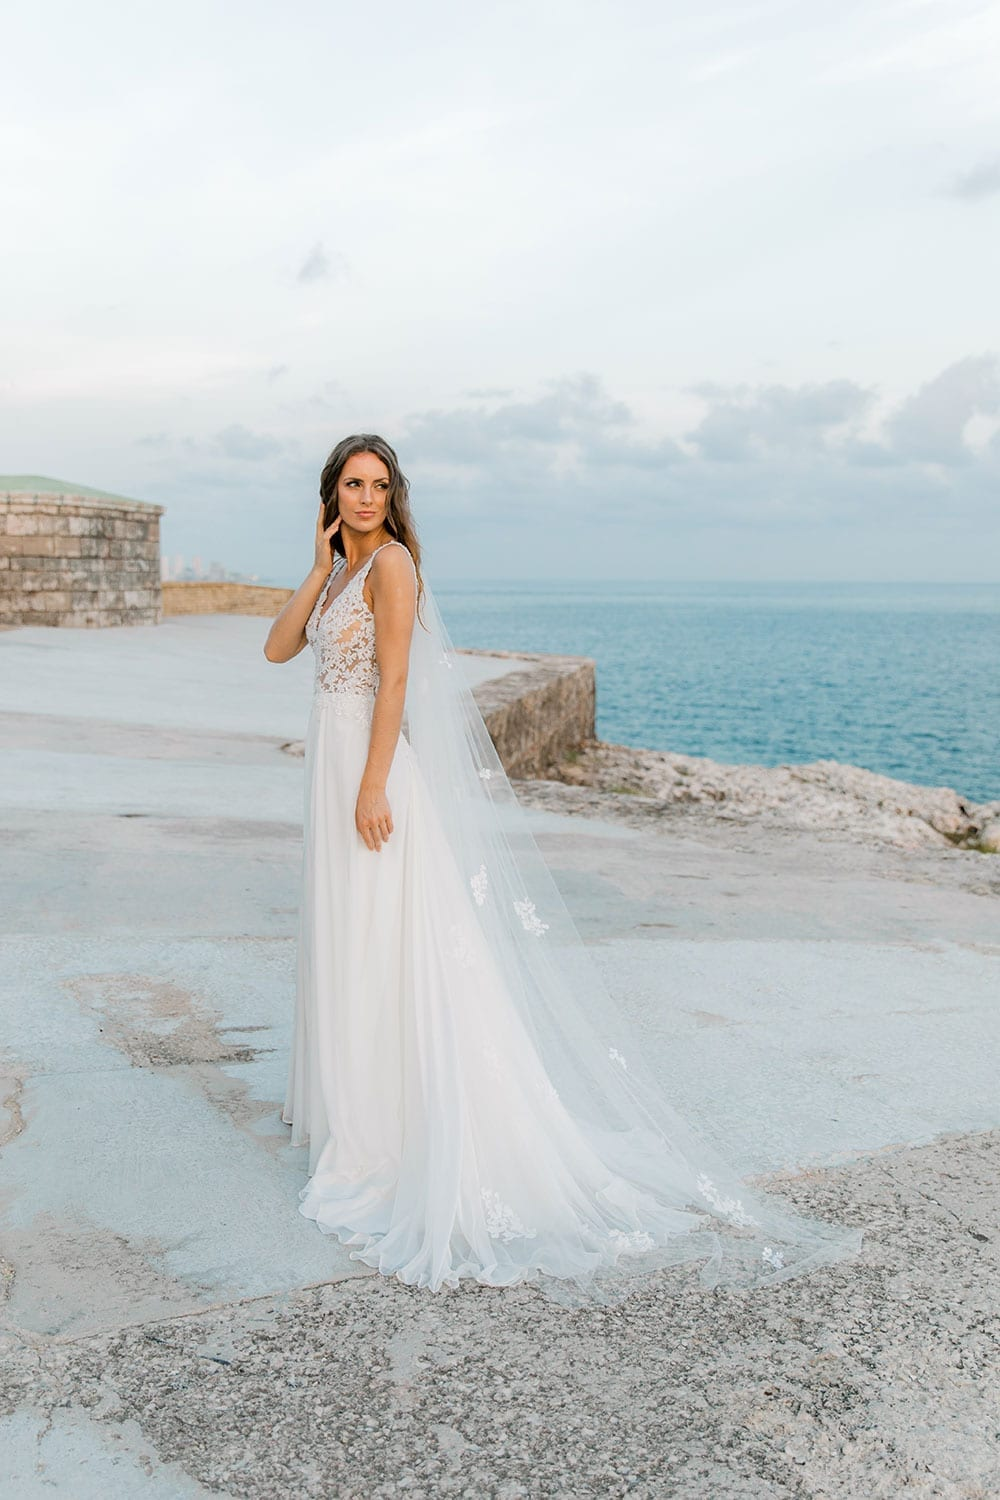 Model wearing Vinka Design Clara Wedding Dress, a Silk Chiffon Beaded Lace Wedding Gown next to the ocean in Havana side angle with dress flowing